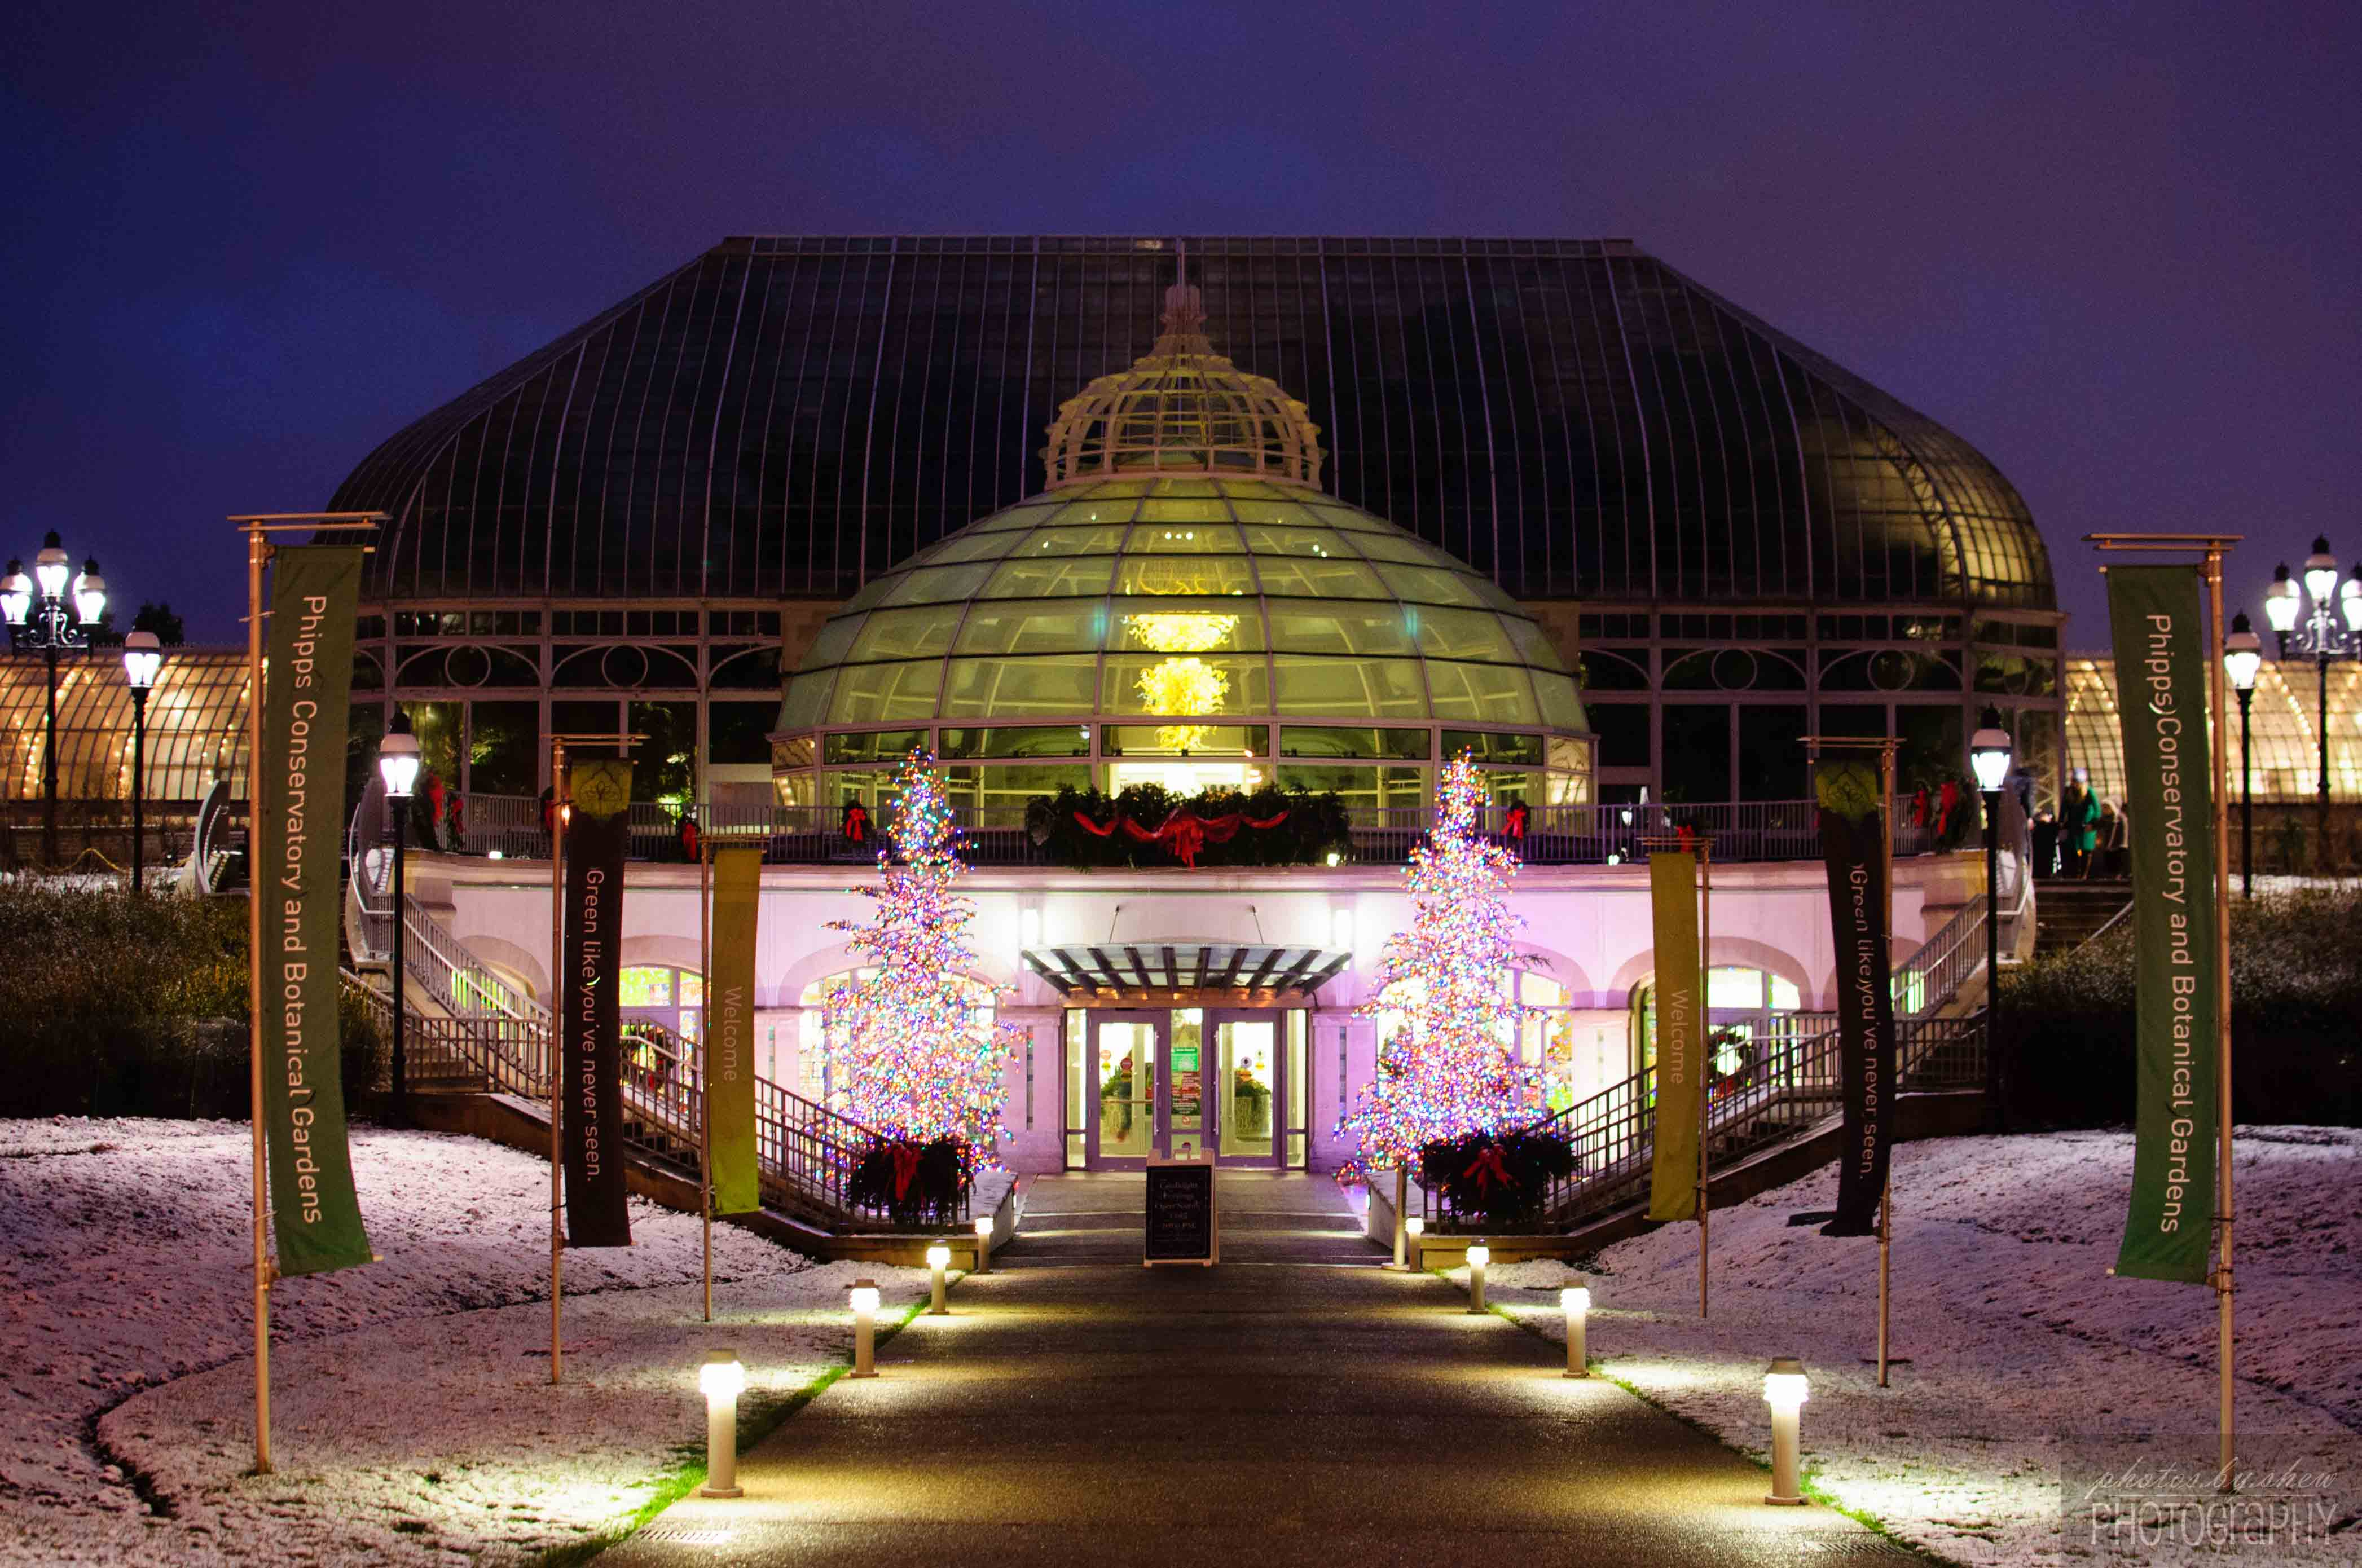 Phipps Conservatory Christmas 2019.Pittsburgh Phipps Conservatory Phoblography